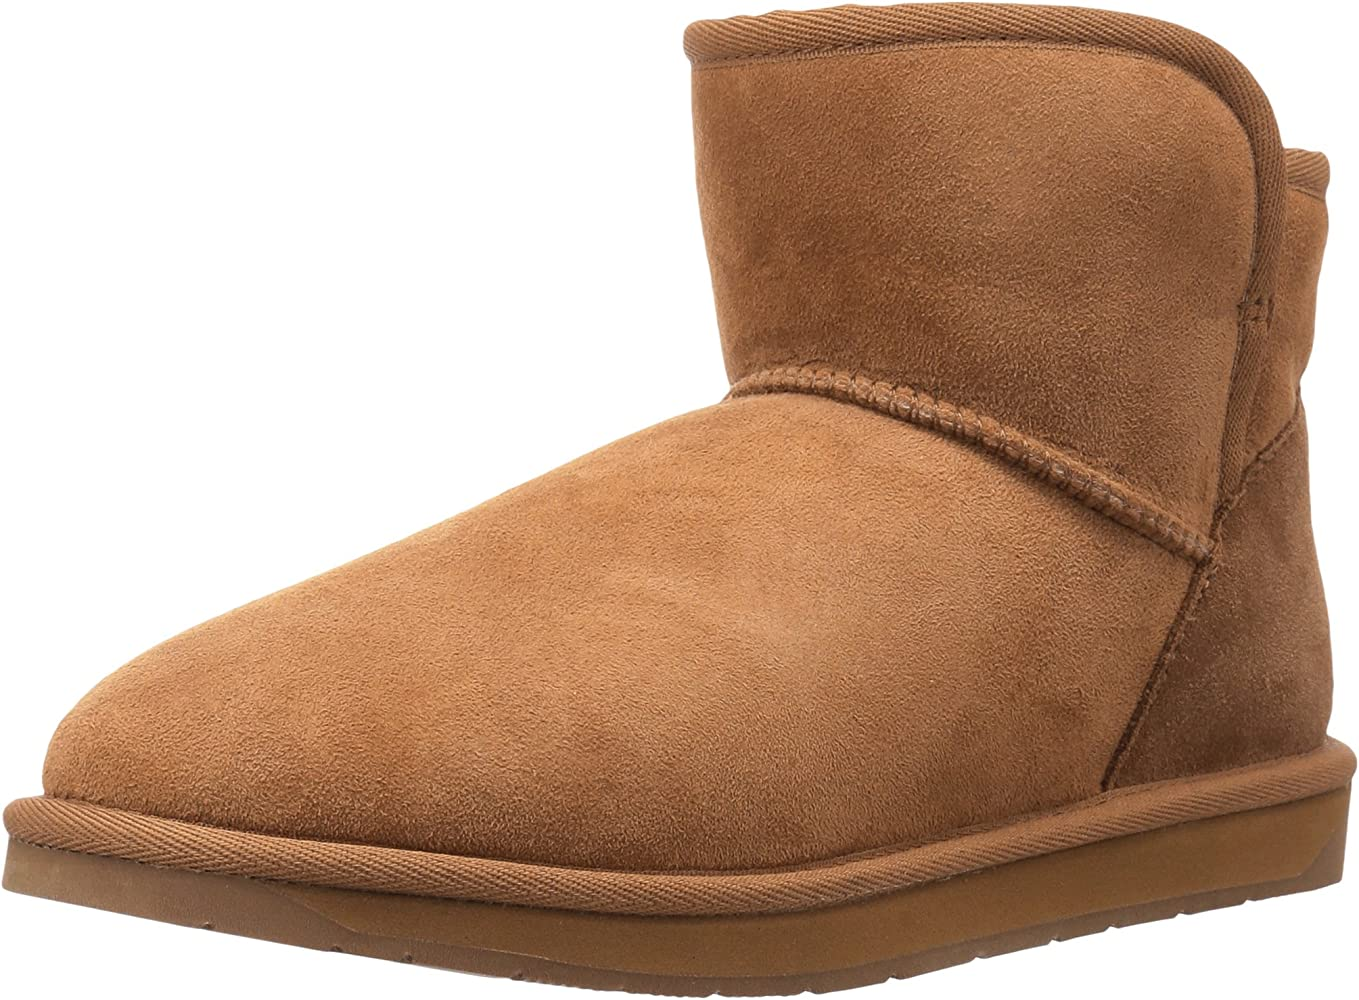 8f606122970 Amazon Brand - 206 Collective Women's Bellevue Shearling Ankle Boot